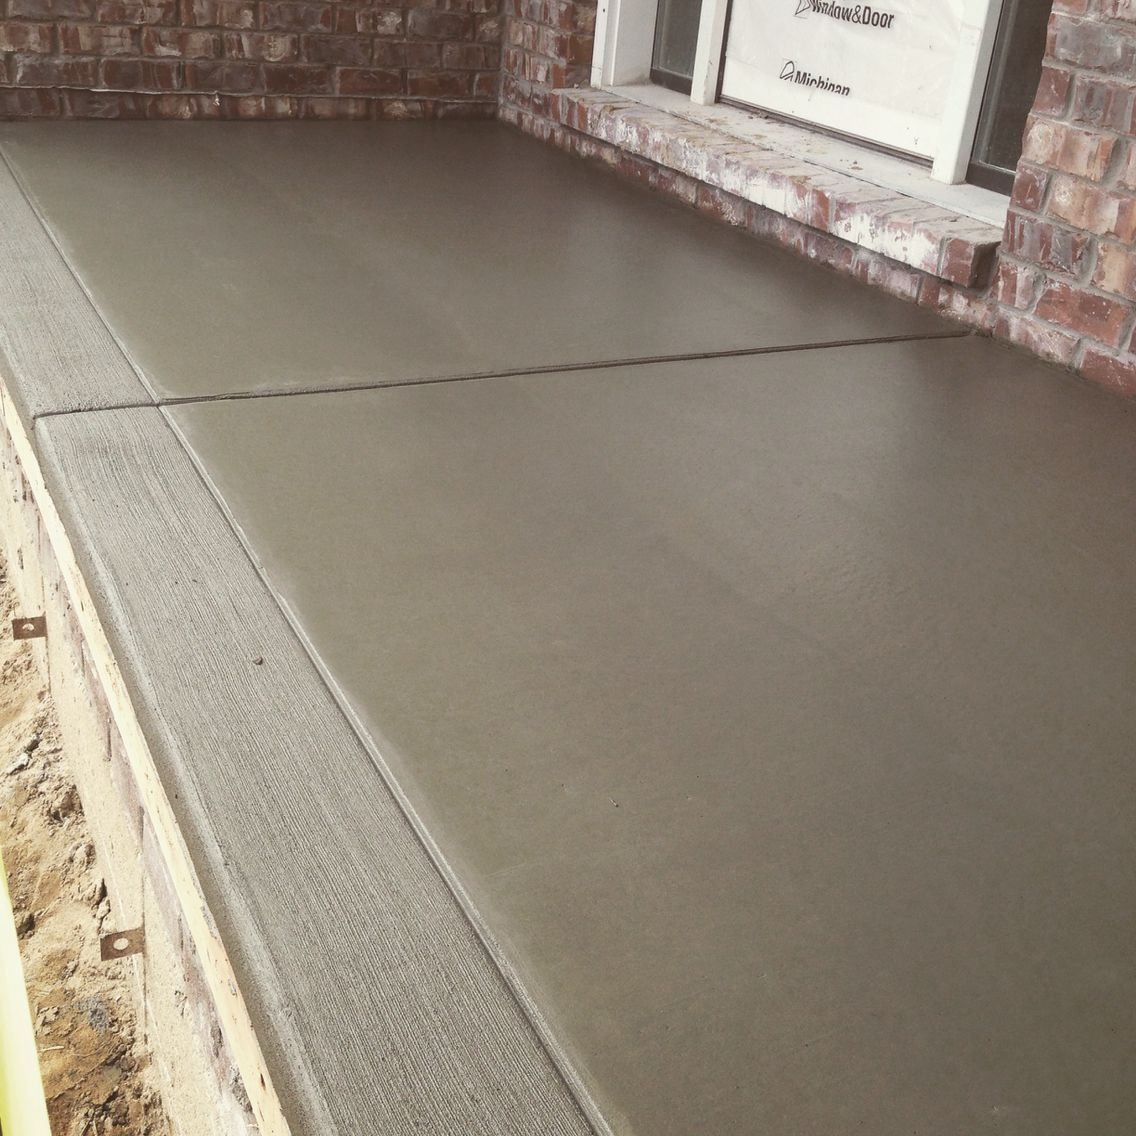 Front Porch Beautiful Porch Cap With A Broom Finish Border! Great For Your  Home And Outdoor Space . NewEraConcrete Provides A Concrete Flatwork From  Your ...